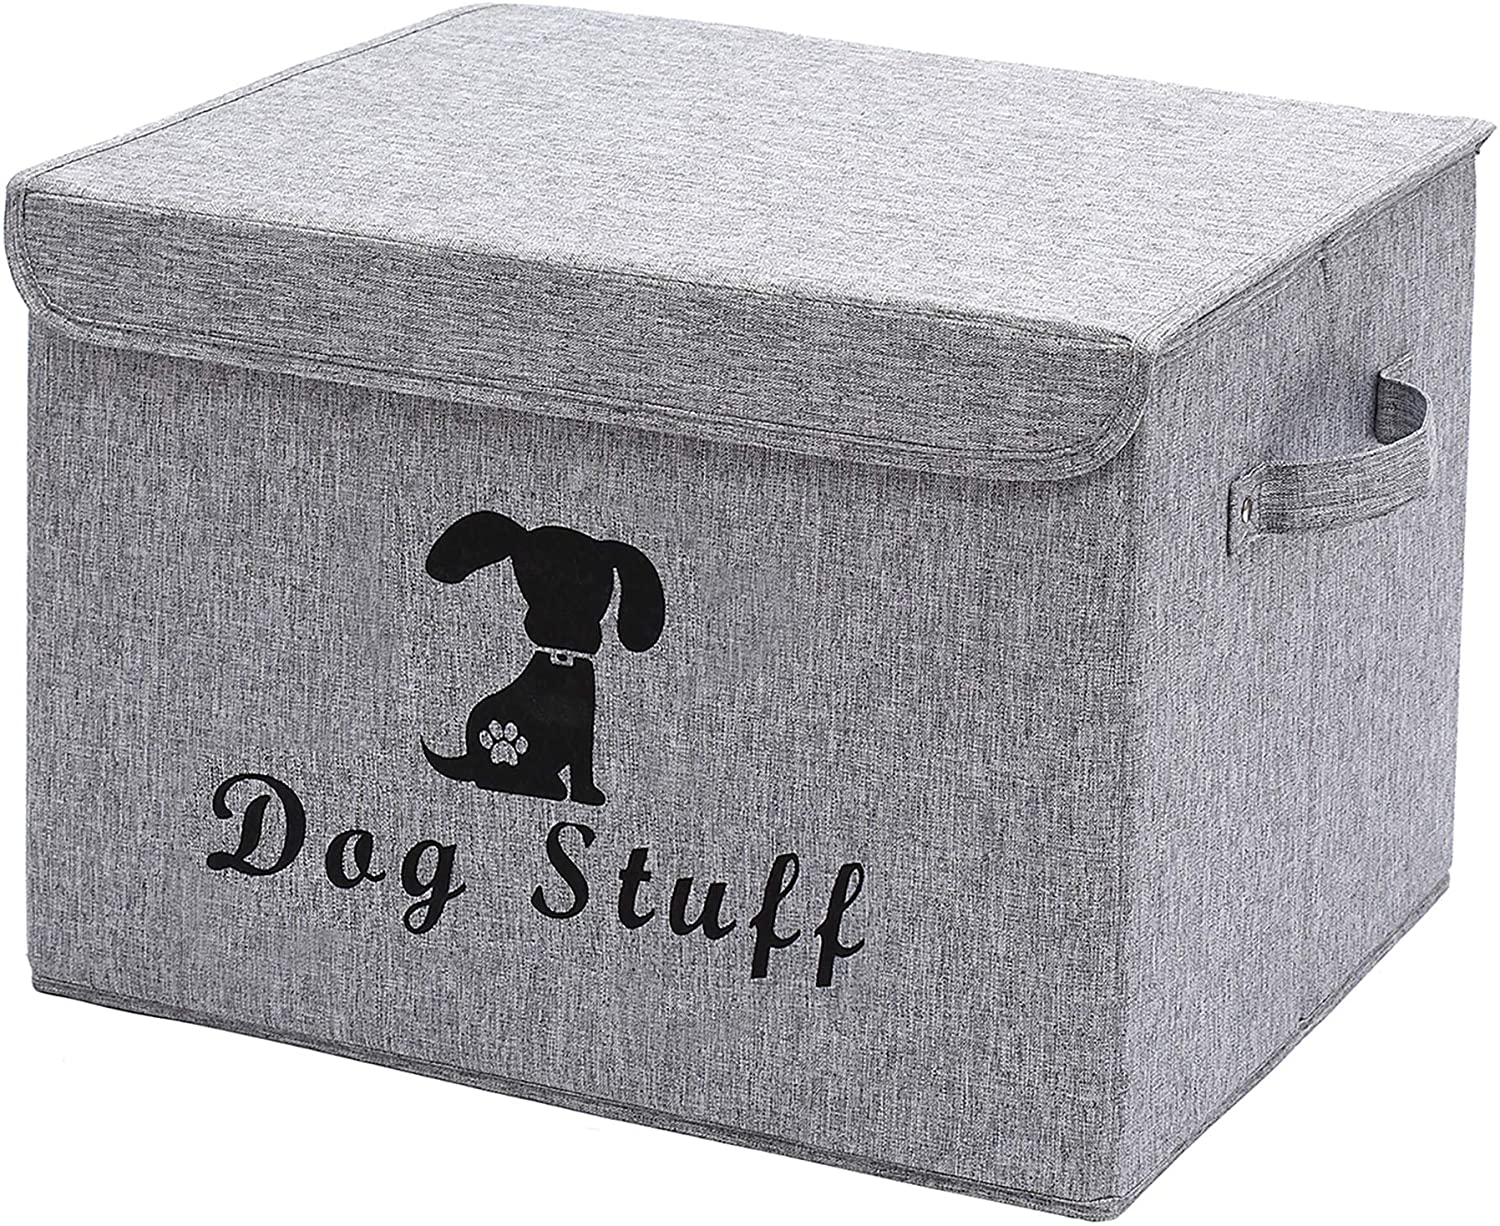 Geyecete Linen Dog Storage Selling and selling Basket Bin a Chest Ranking TOP18 Organizer Lid with